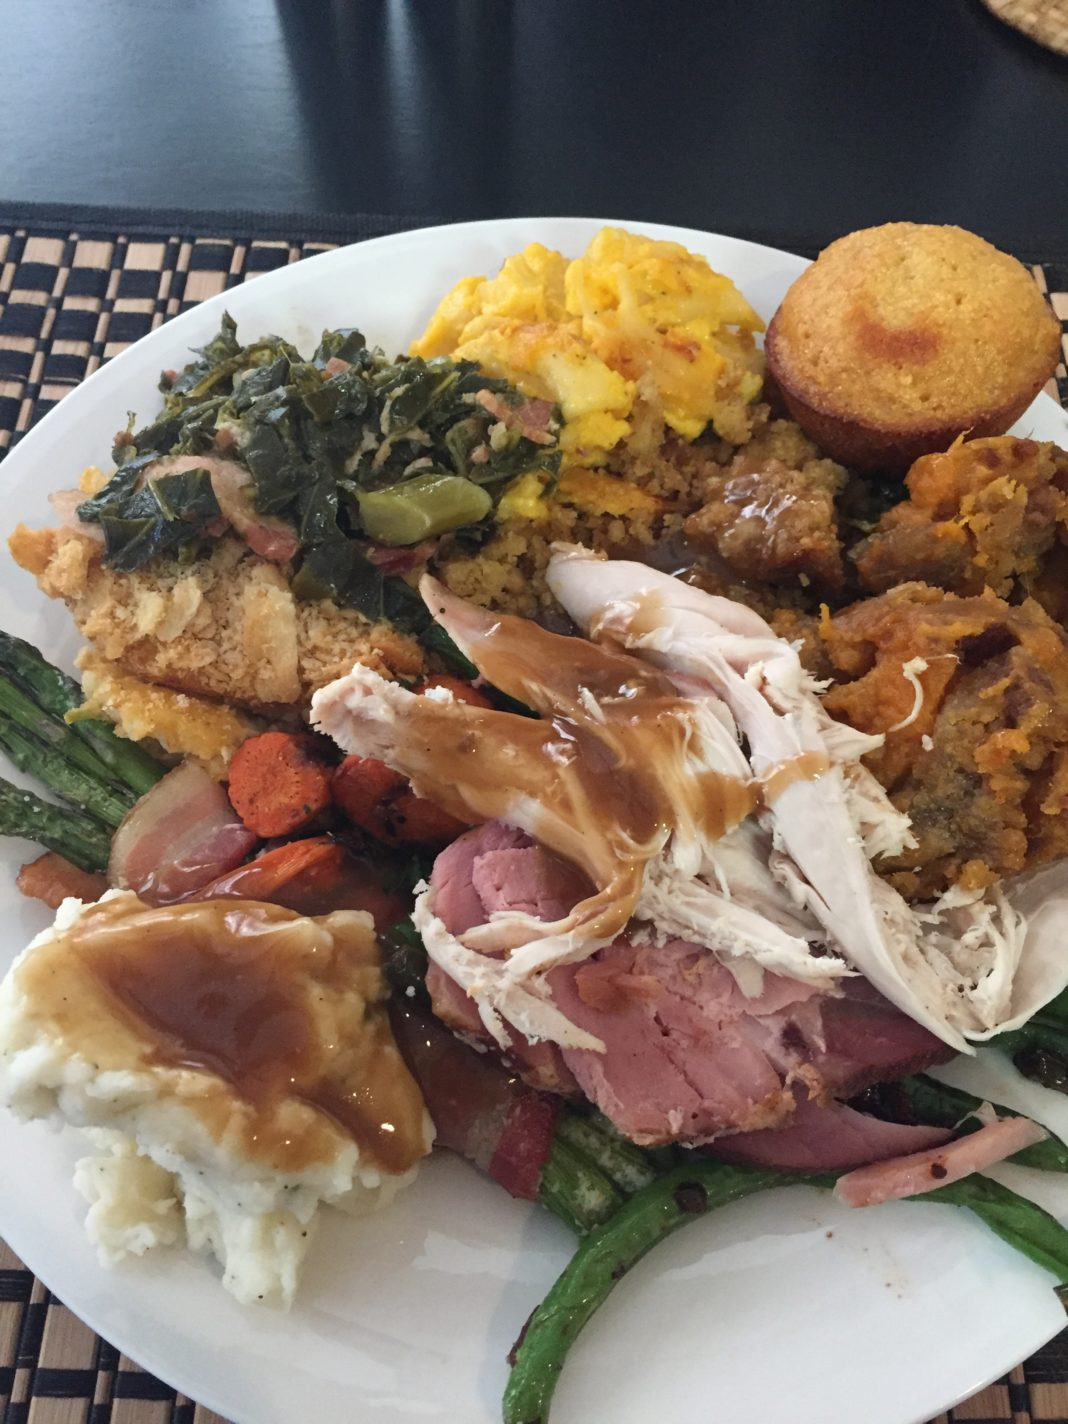 Thanksgiving recipe | Turkey | Thanksgiving Dinner Ideas | Thanksgiving Sides | Thanksgiving menu ideas | Southern Collard Greens | Collard Greens Recipe | cornbread muffin recipe | Sweet Potato Souffle Recipe | Maple Turkey Glaze | Soul Food Thanksgiving | Southern Mac and Cheese | Macaroni and Cheese